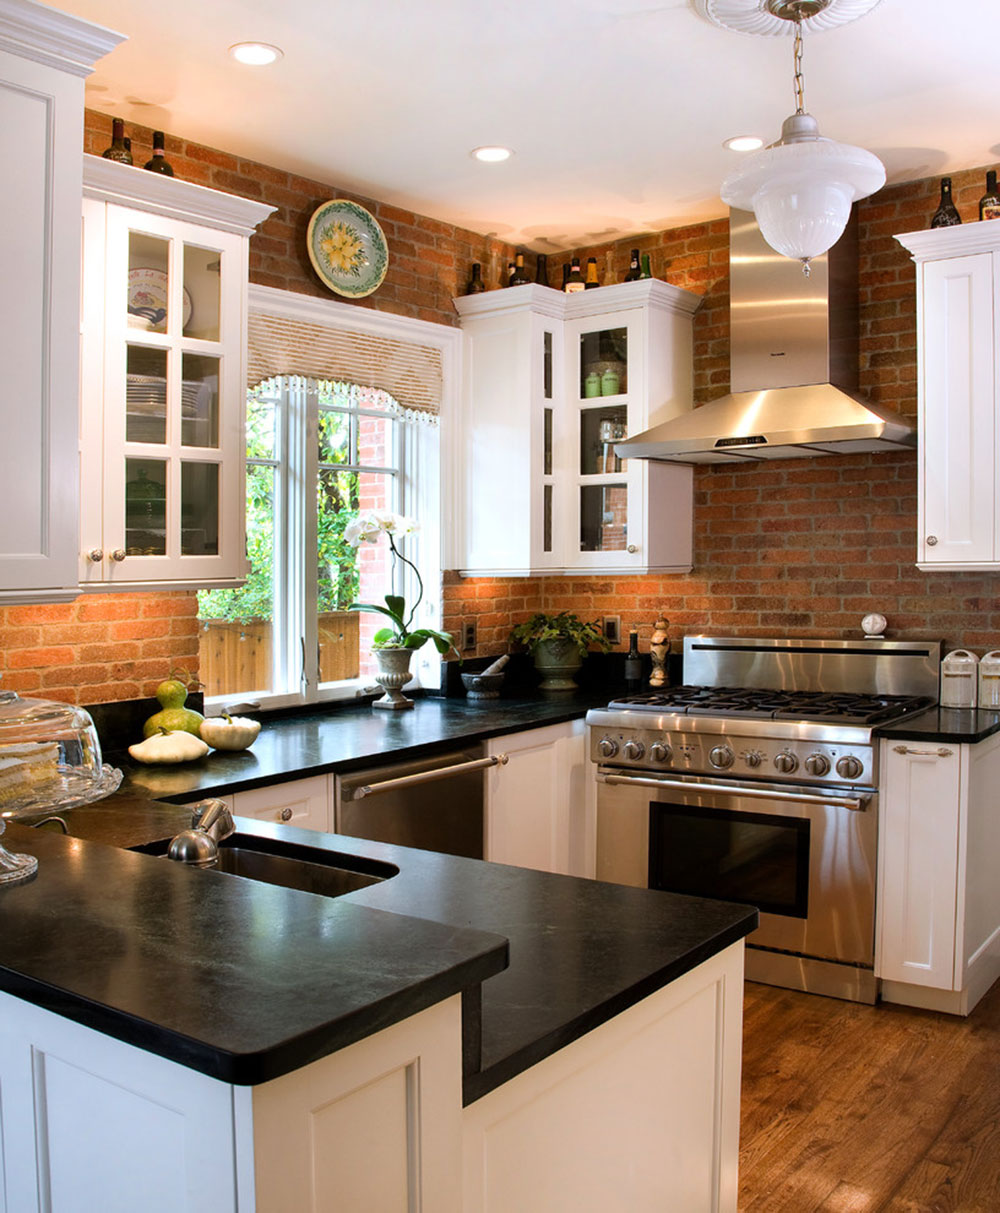 Image of: Modern Brick Backsplash Kitchen Ideas